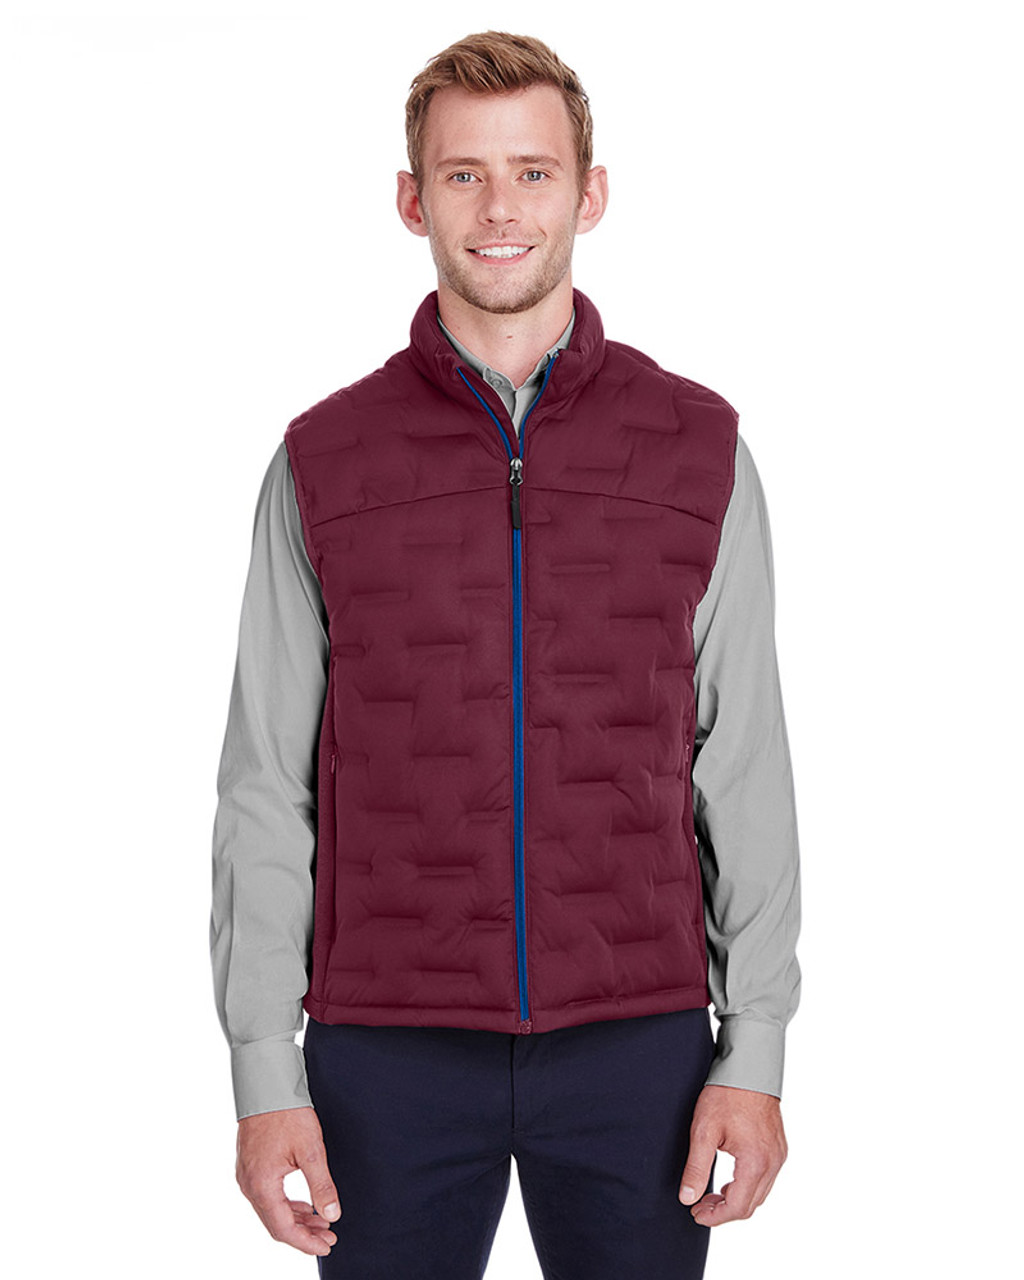 Burgundy/Burgundy Heather/Olympic Blue - NE709 North End Men's Pioneer Hybrid Vest | Blankclothing.ca